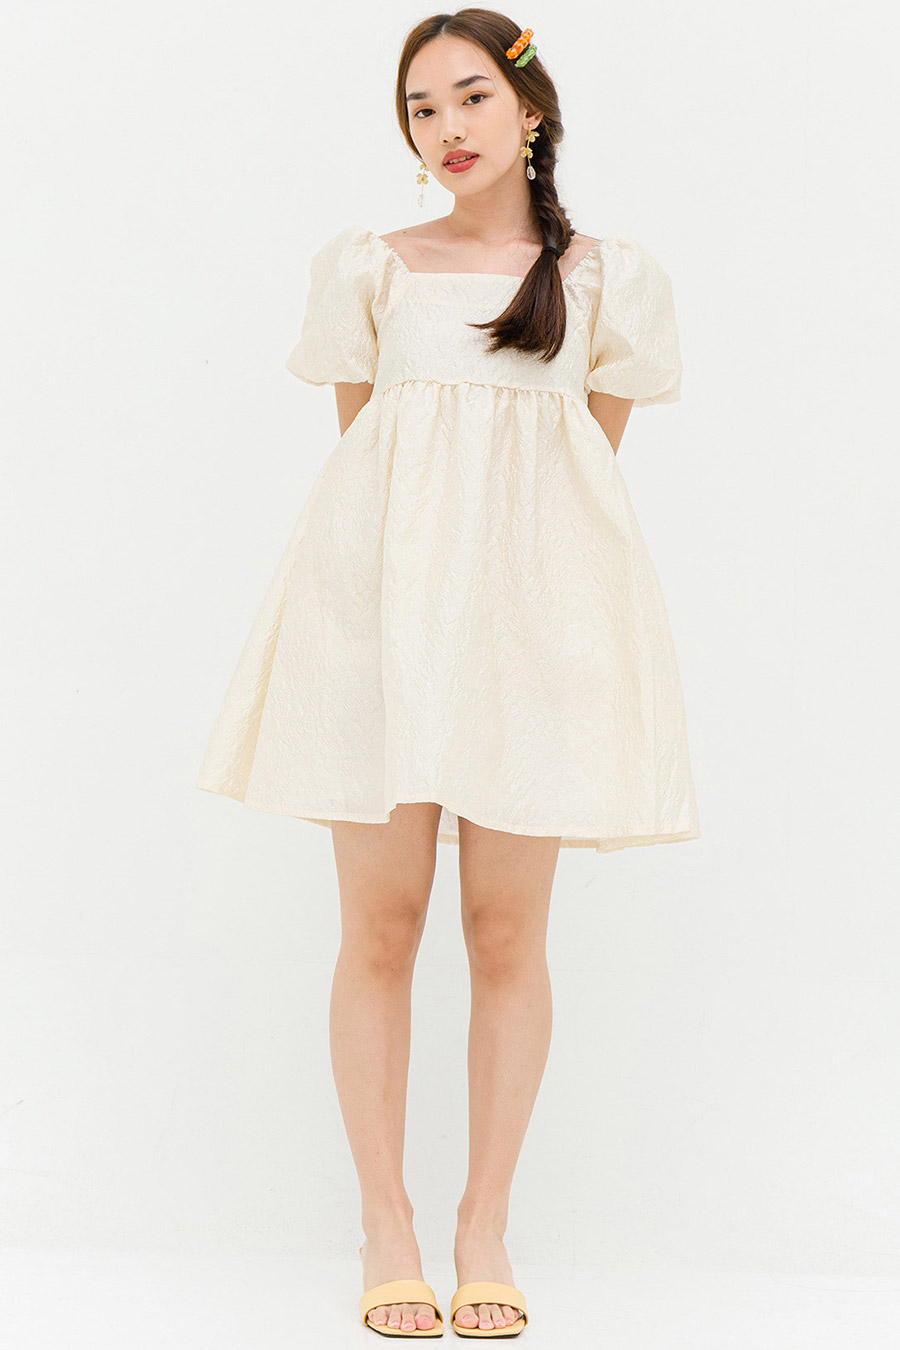 *BO* HOFFMAN DRESS - IVORY